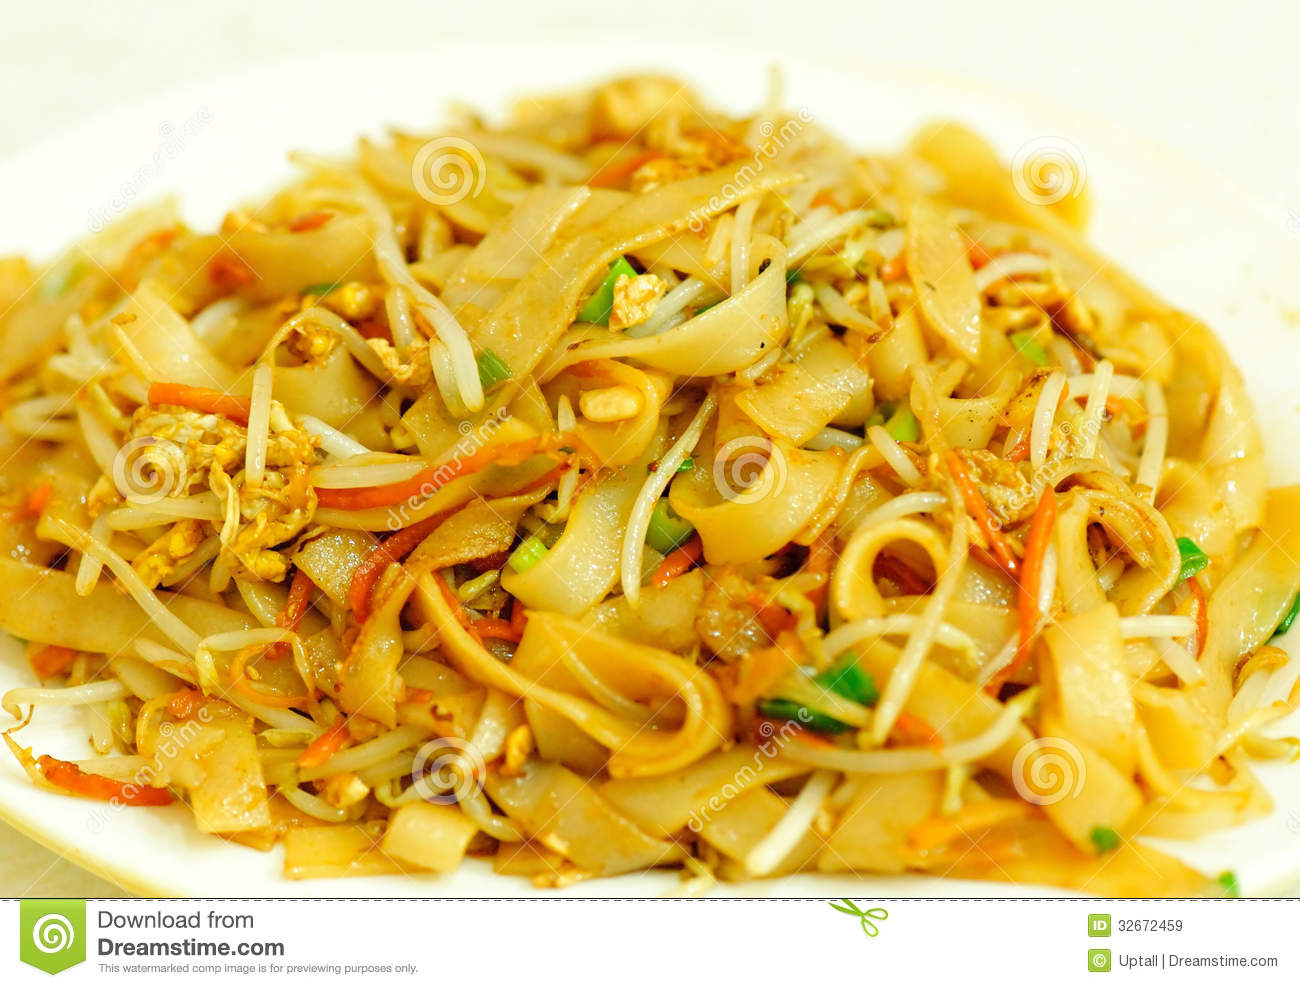 Stir fried rice noodles with egg and vegetables.